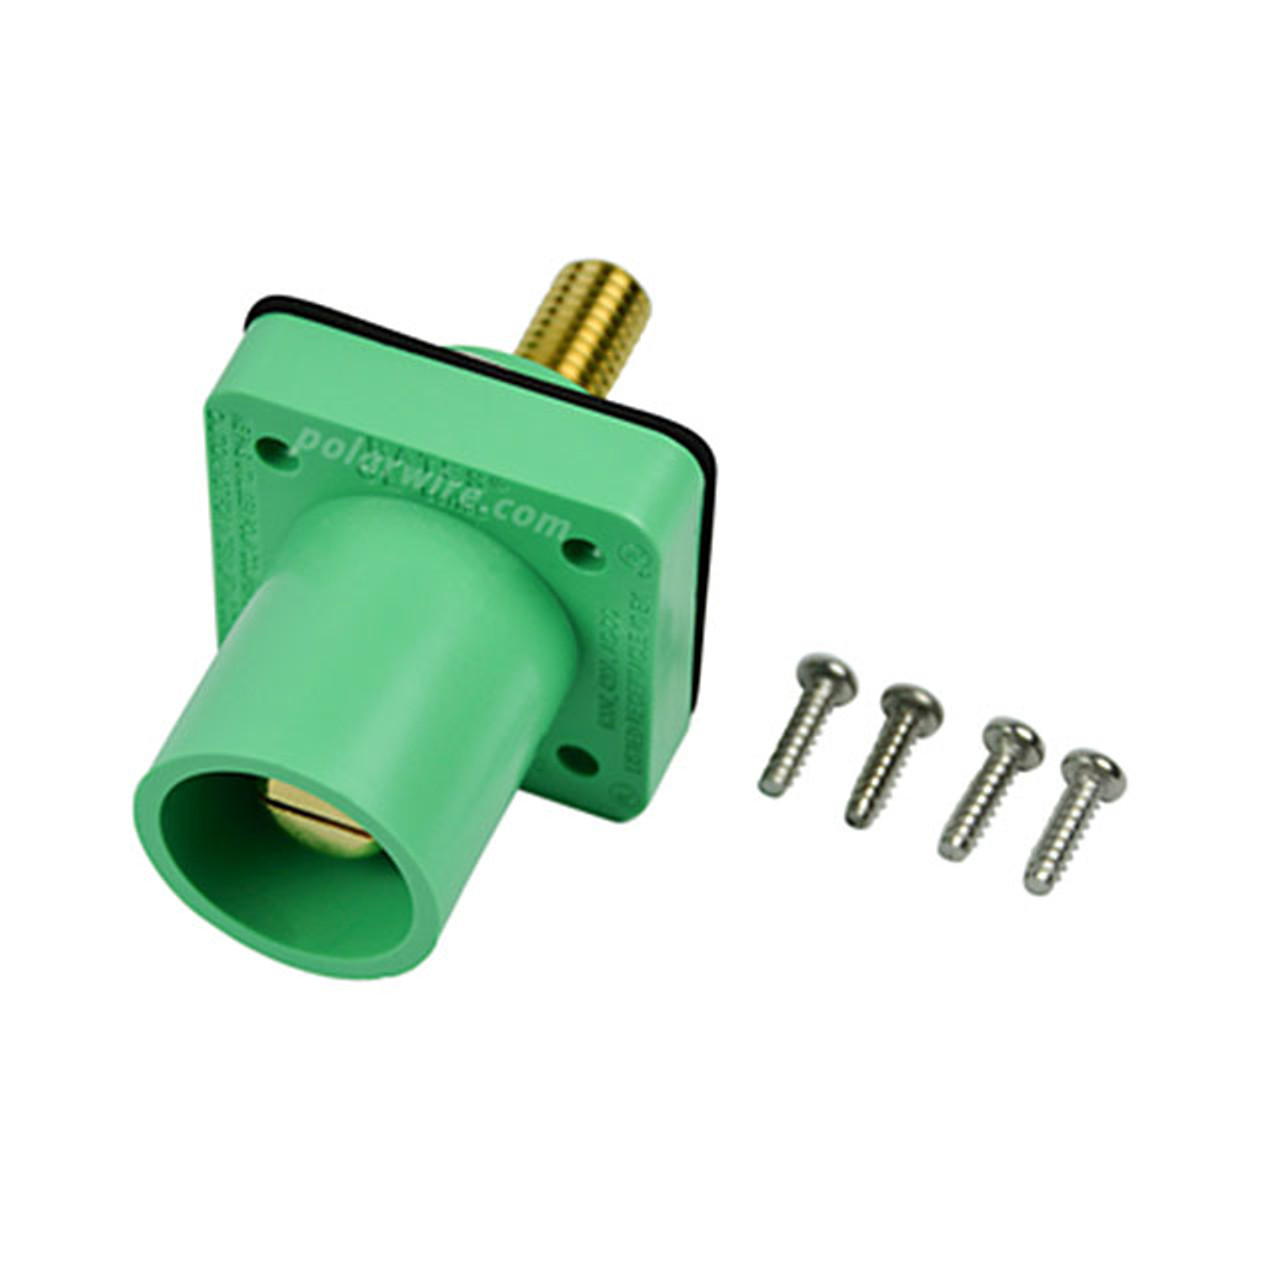 "CAM LOCK 400A PANEL MALE GREEN 1/2"" STUD 2/0-4/0"